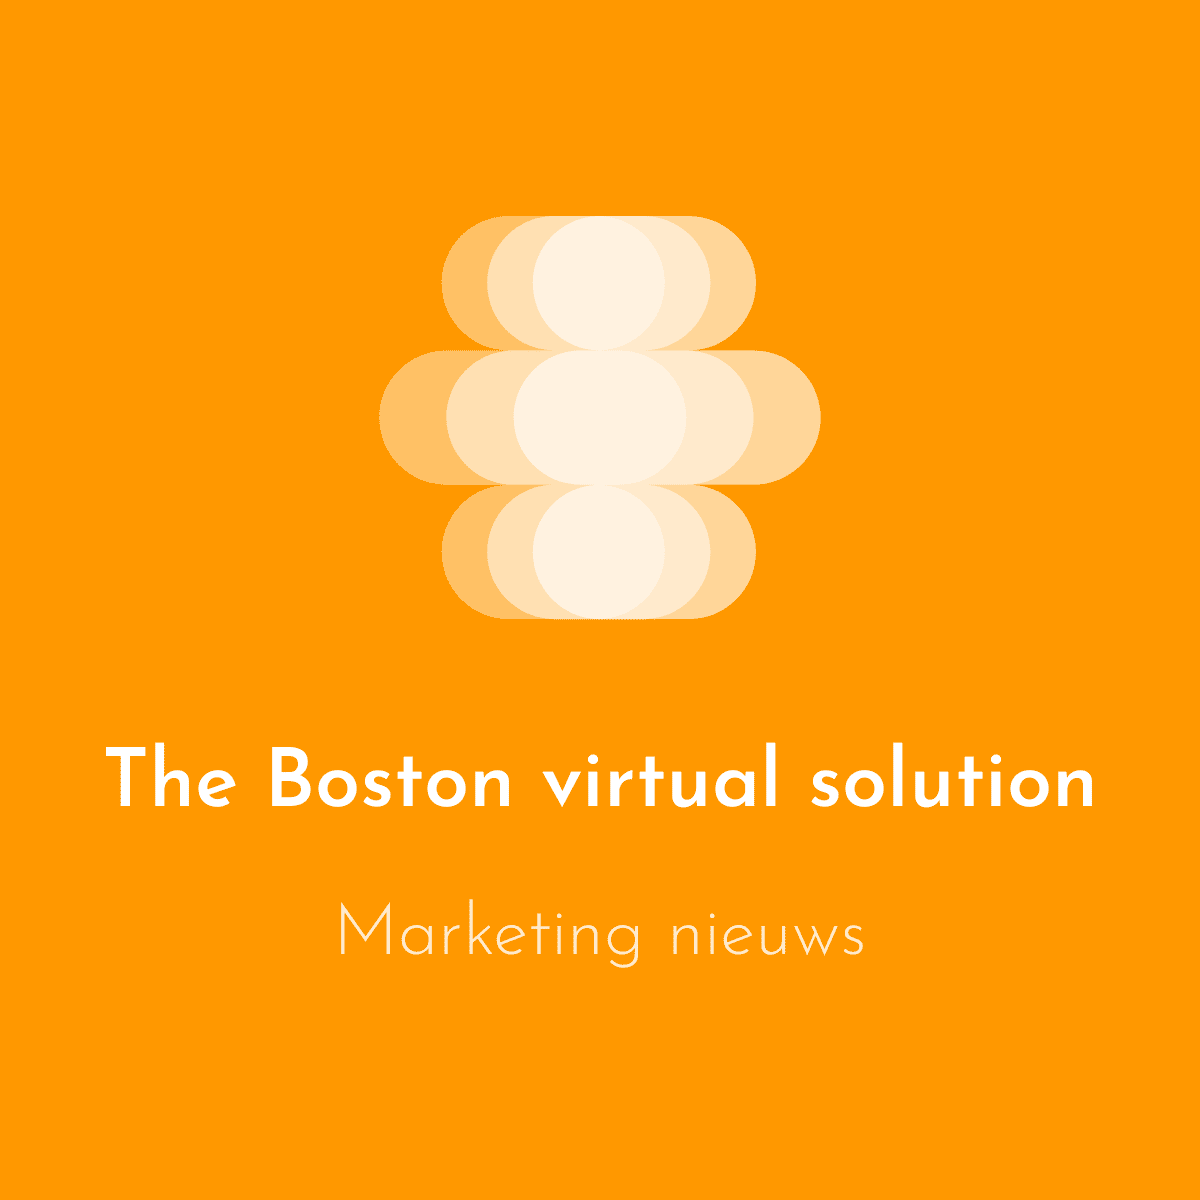 Thebostonvirtualsolution